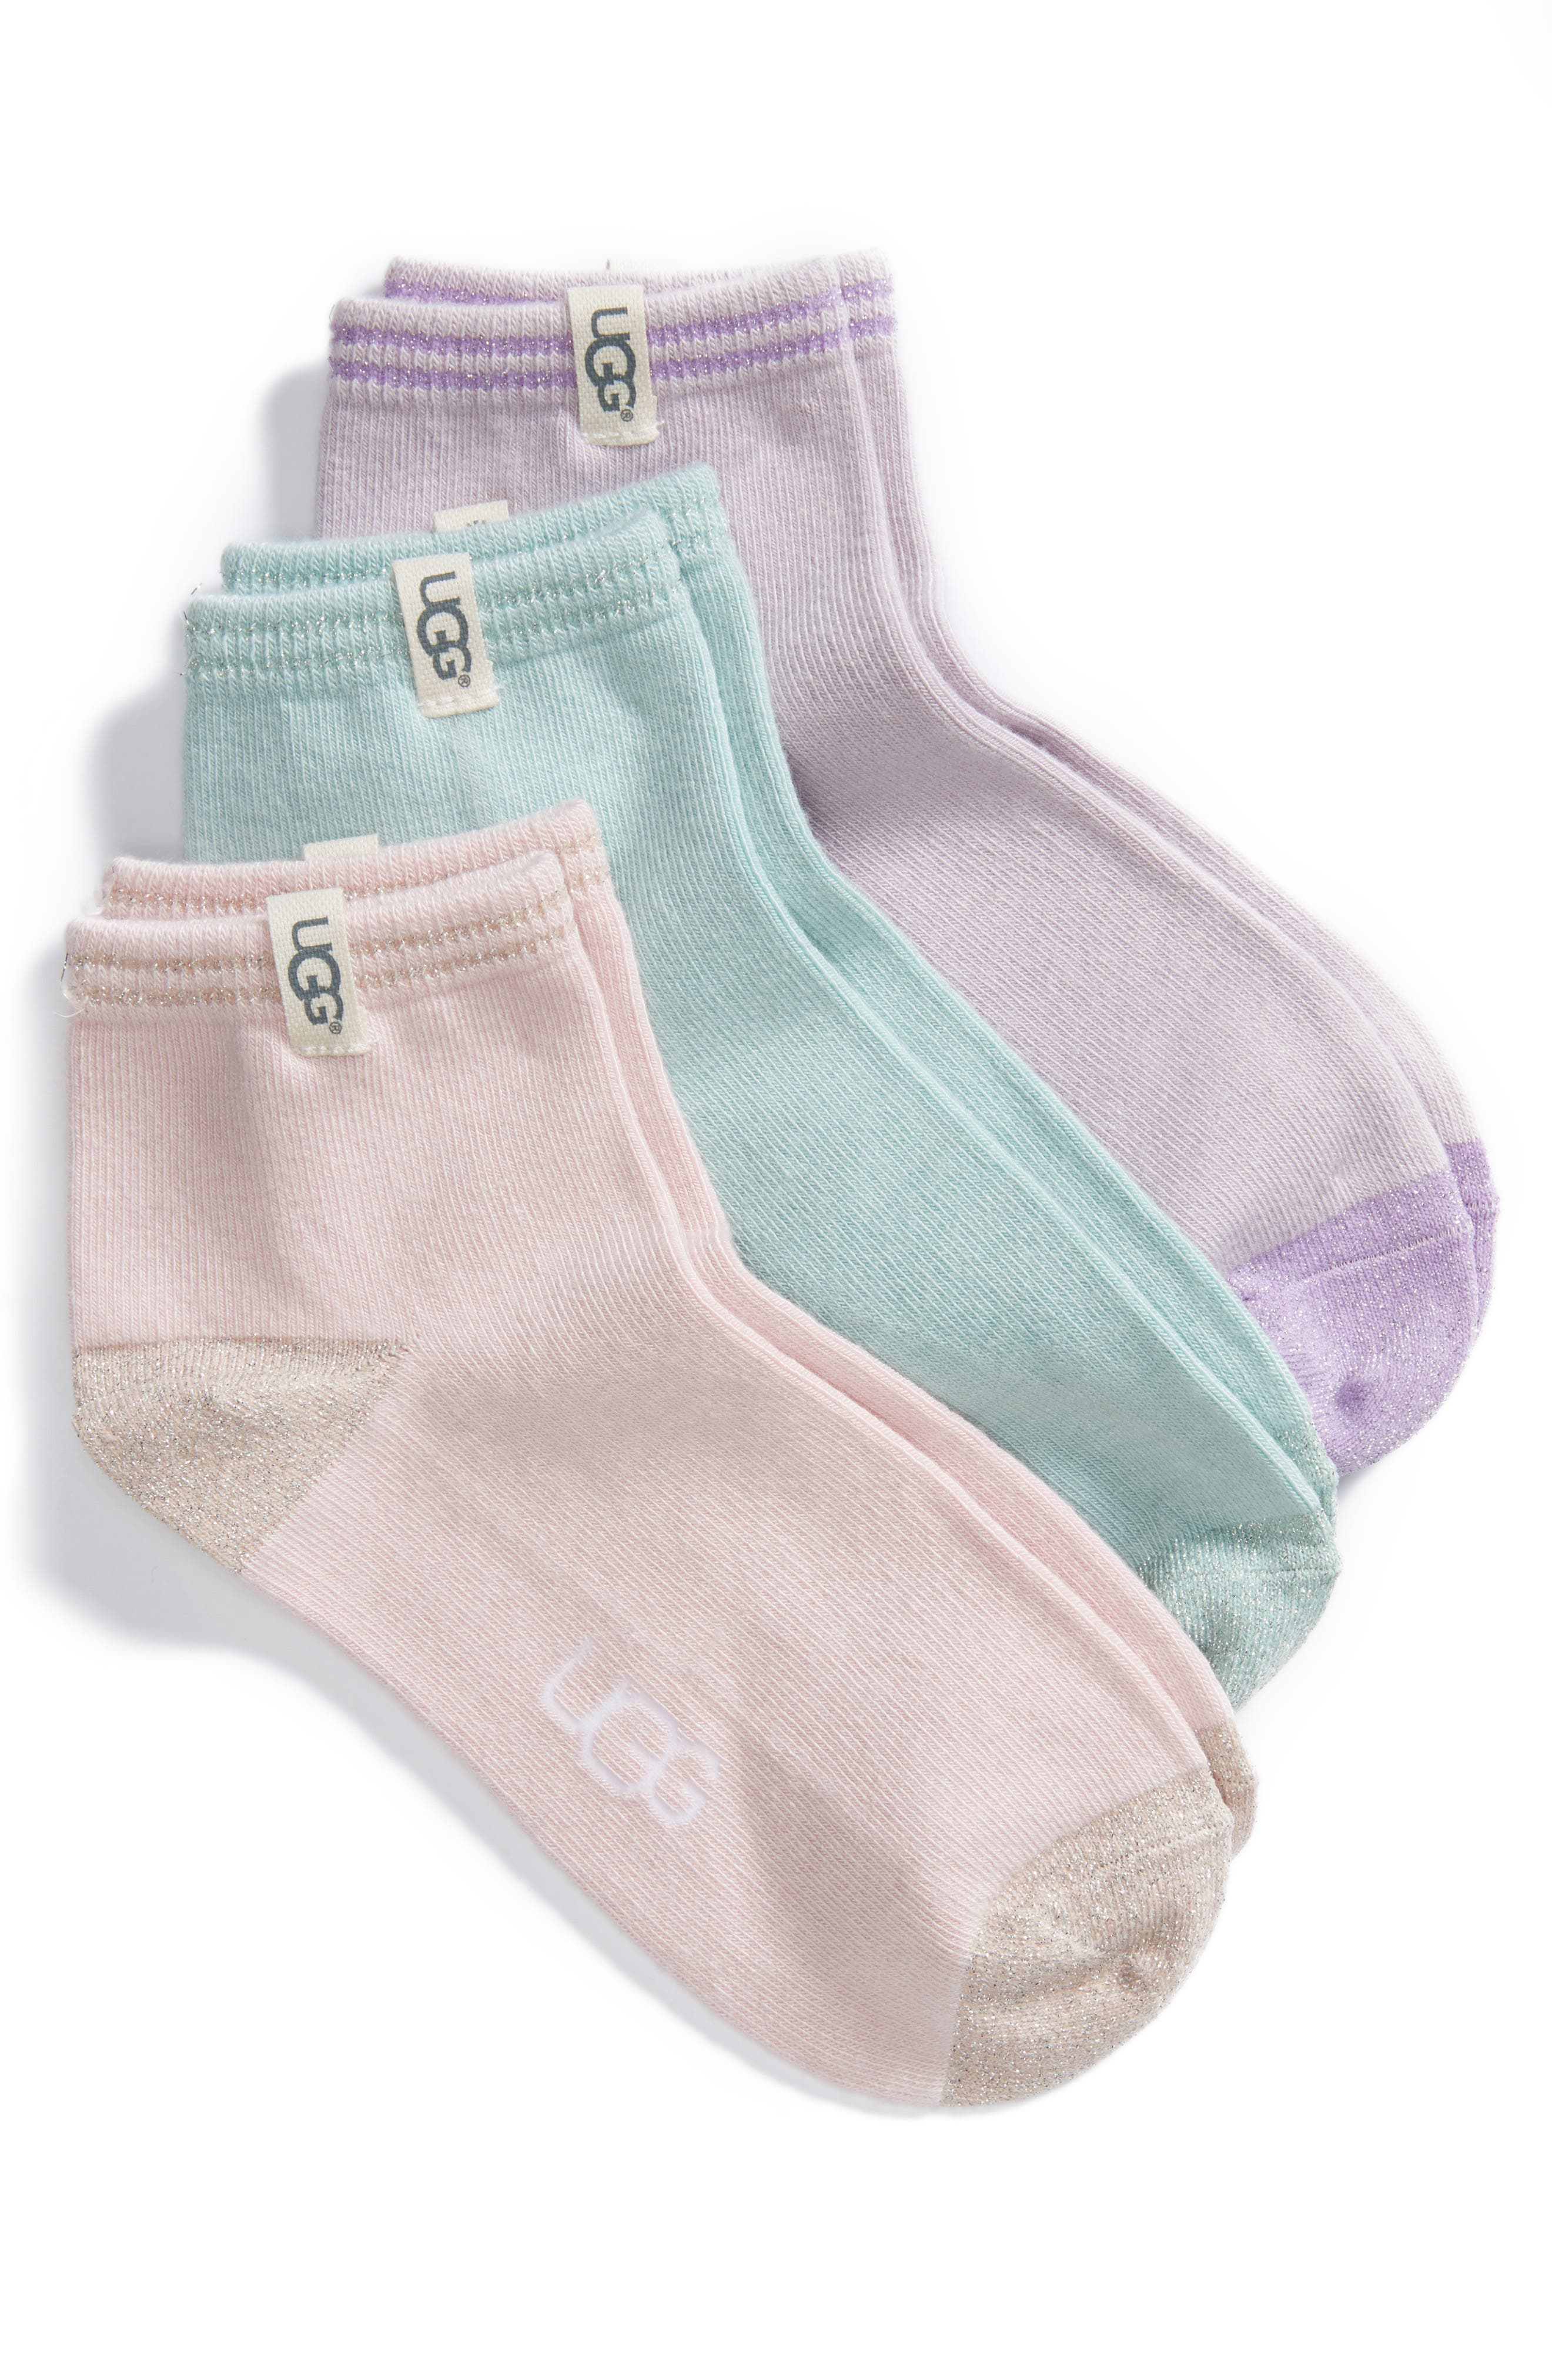 3-Pack Ankle Socks,                             Main thumbnail 1, color,                             400